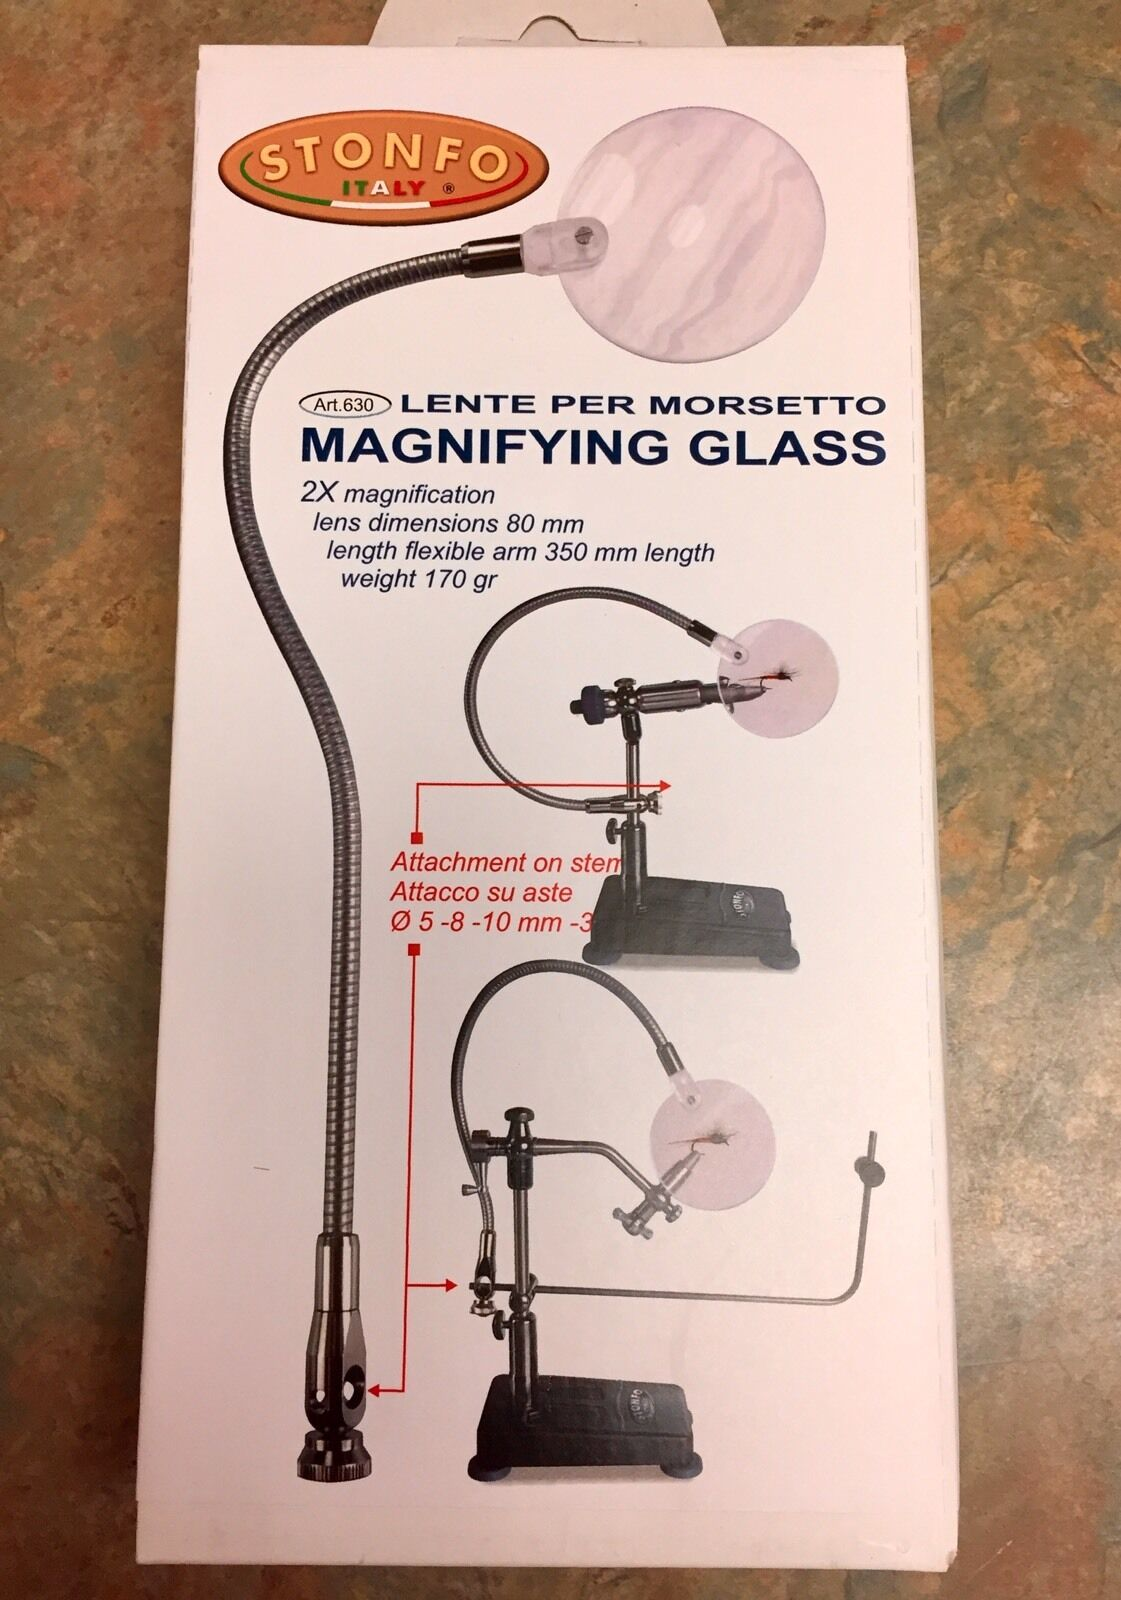 STONFO MAGNIFYING GLASS. FLEX ARM ATTACHES TO VISE STEM. FLY  TYING TOOL. NEW  low 40% price